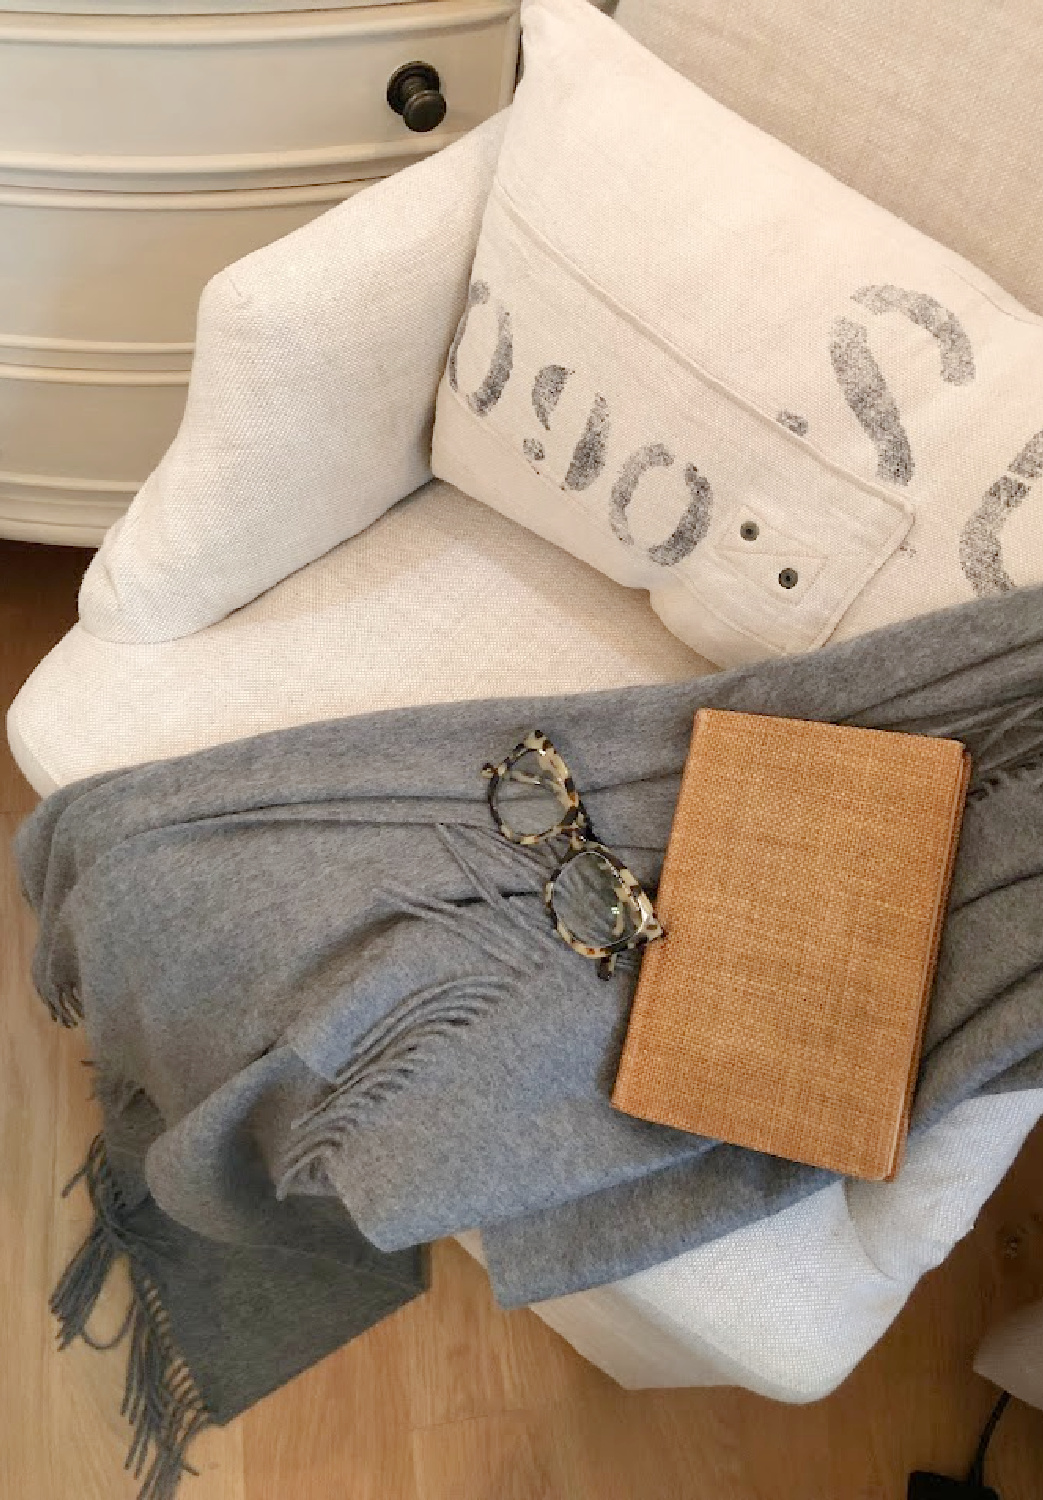 Warby Parker Aubrey frames for women on a dark gray cashmere throw on a linen chair in serene bedroom - Hello Lovely Studio.